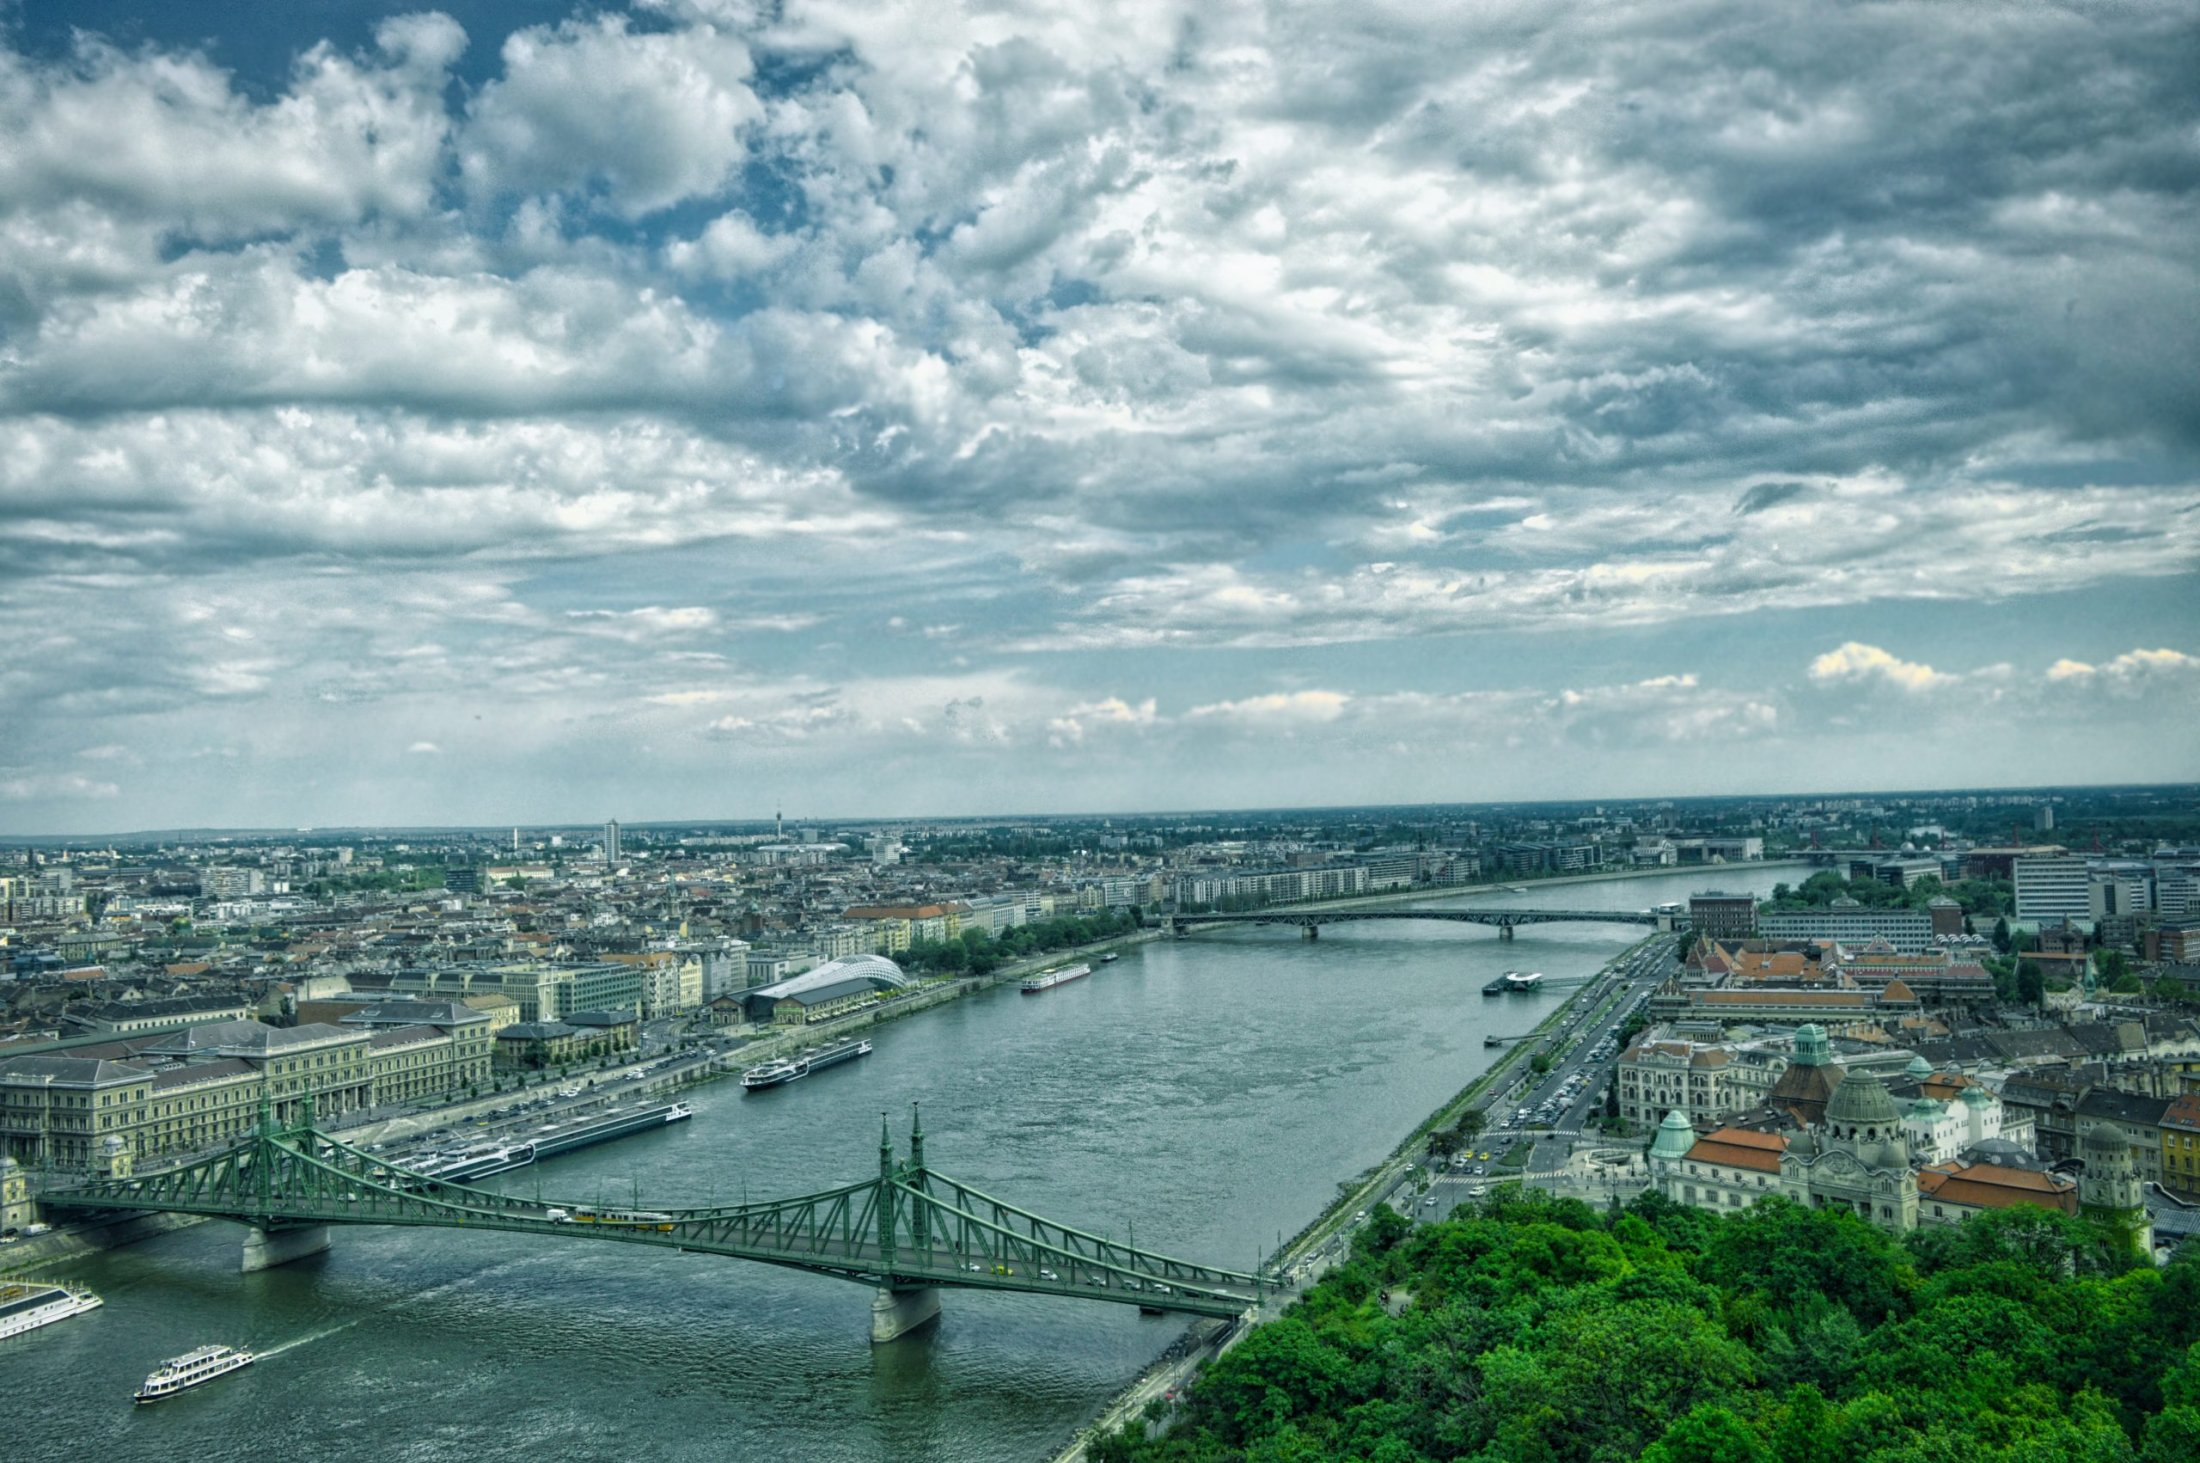 A Libertybridge-buda Edited